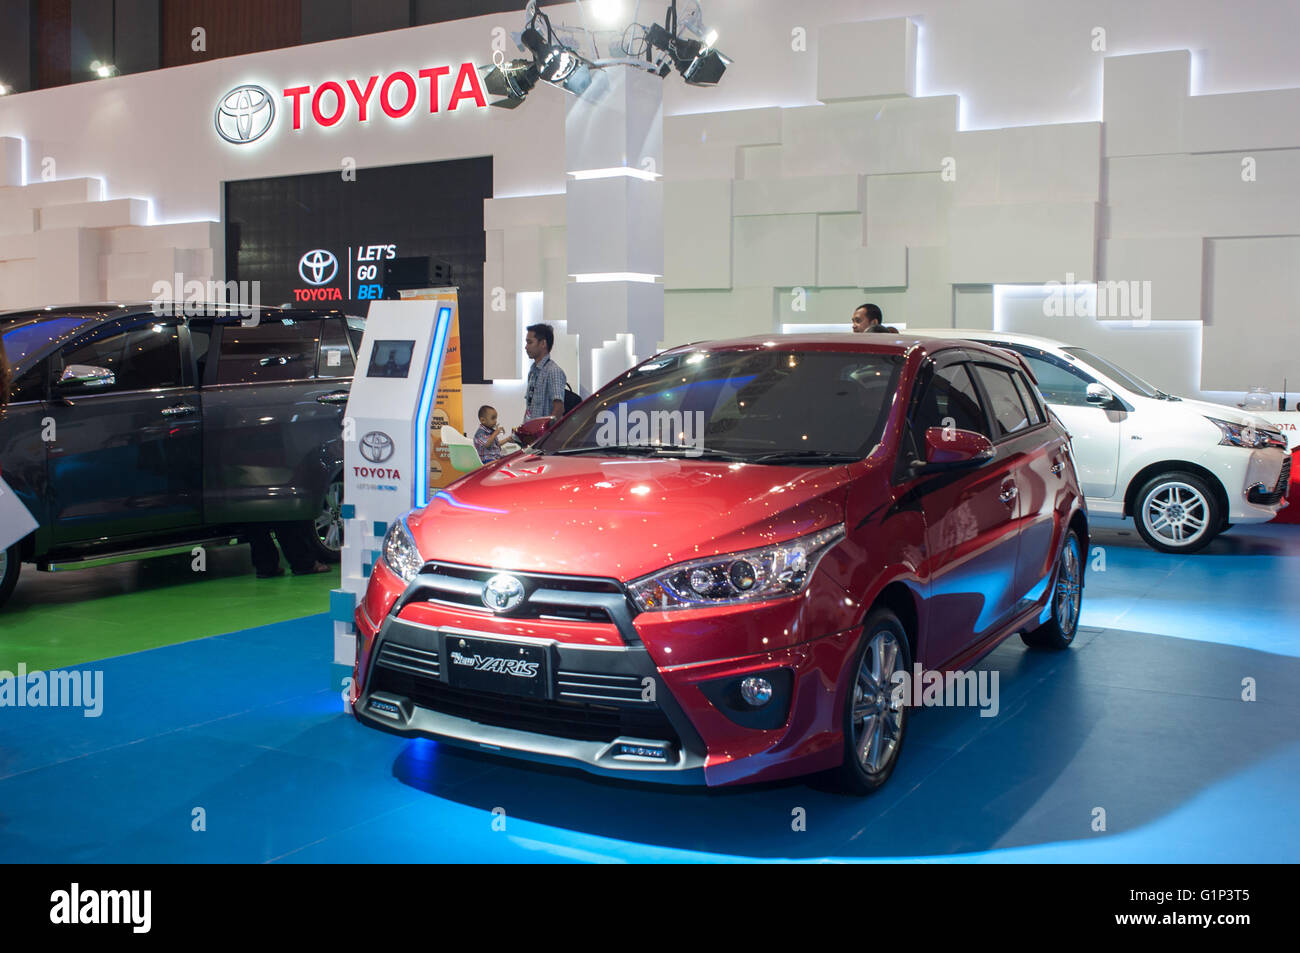 Makassar, Indonesia. 18th May, 2016. Toyota Exhibiths the All New Yaris at GIIAS Makassar Autoshow in Makassar, - Stock Image